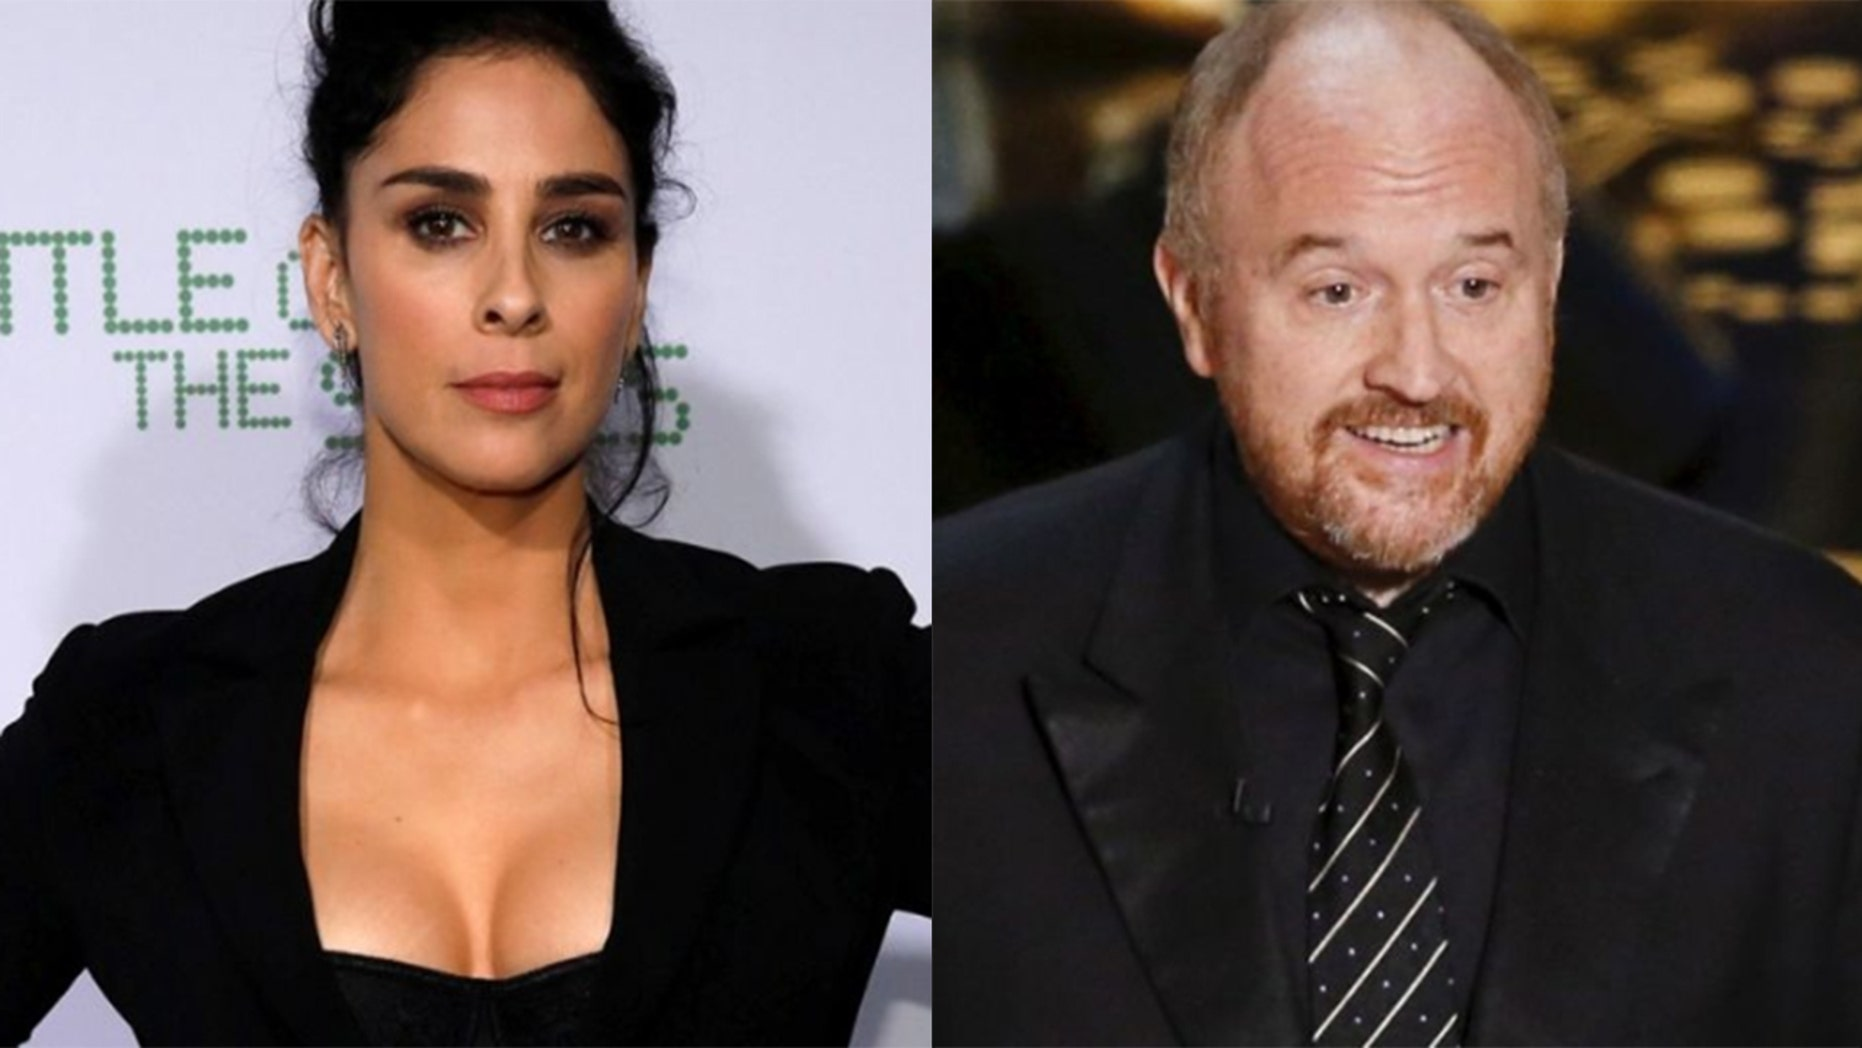 Sarah Silverman says Louis C.K. claimed his daughter was helped by her monologue about his sexual misconduct.